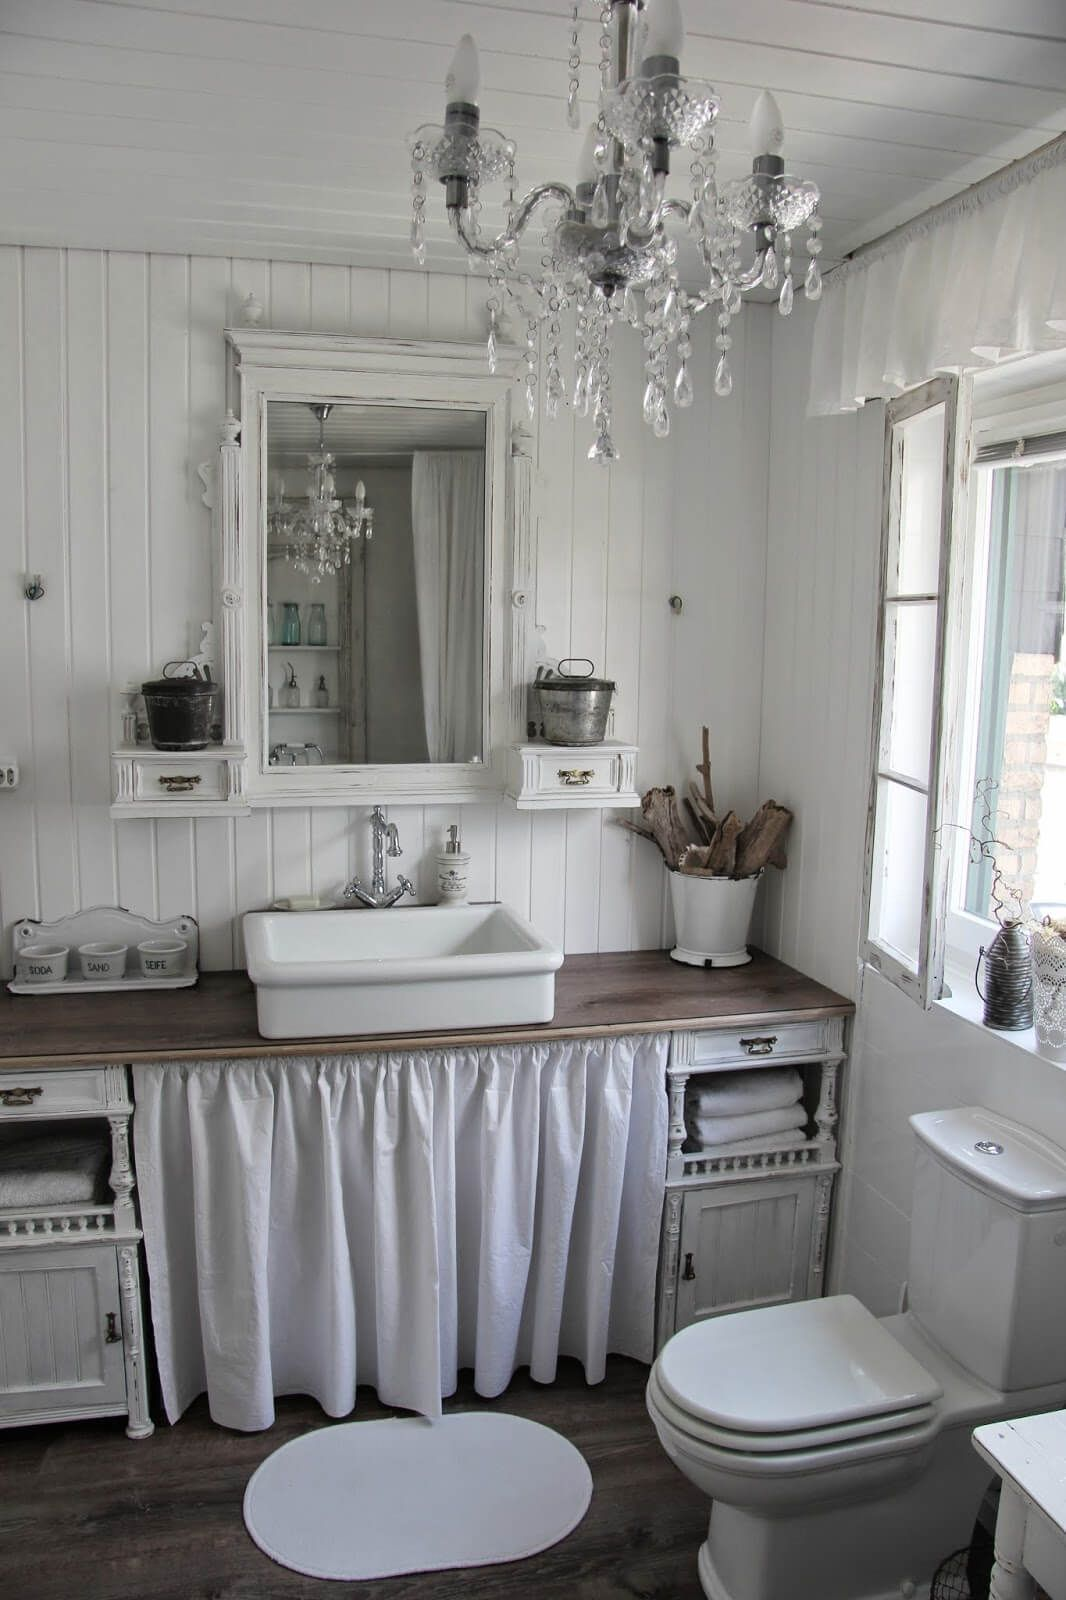 Photo of Shabby Chic Bathroom Design with Ruffle Details